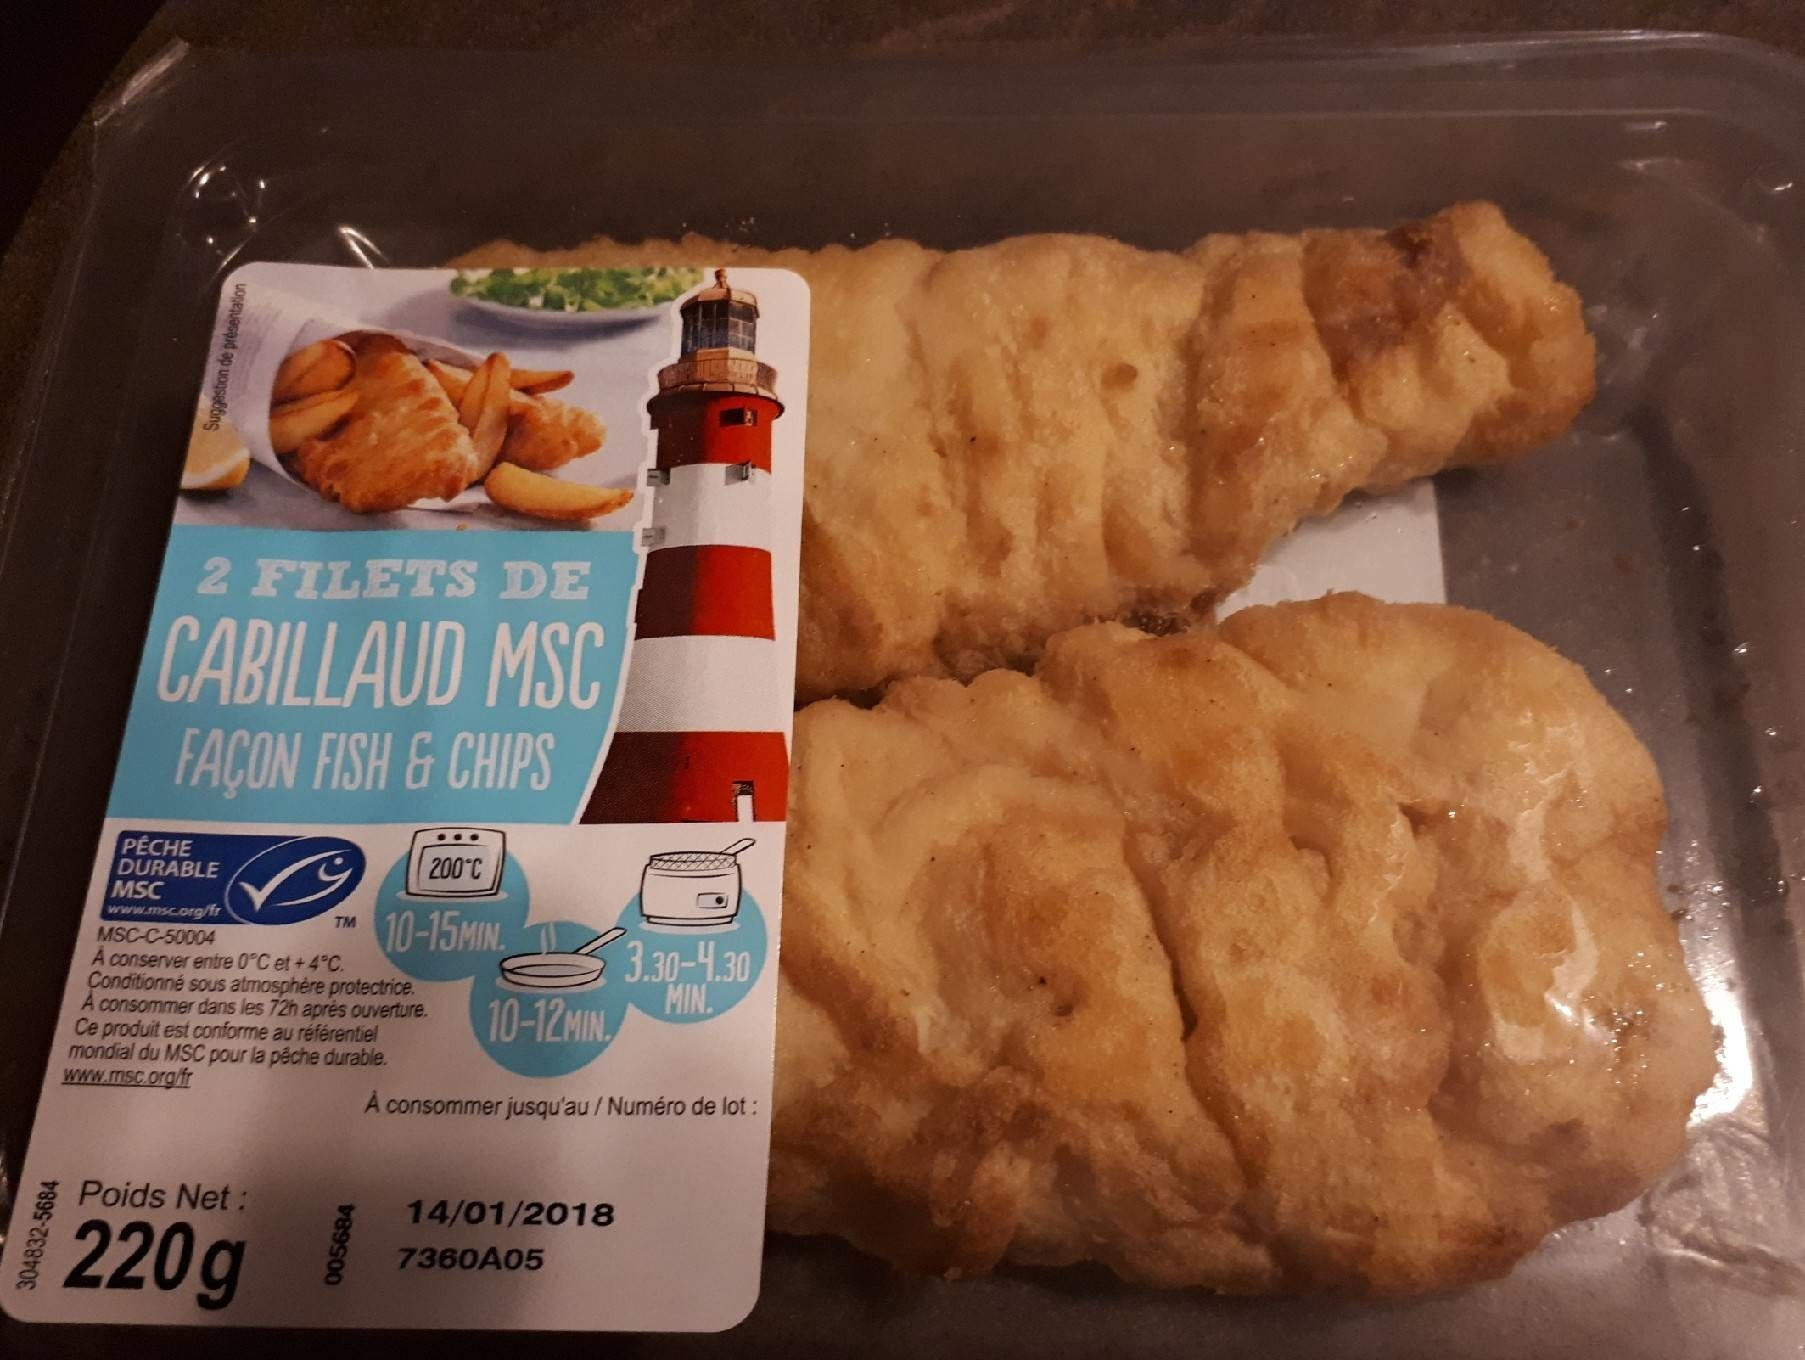 2 filet de cabillaud msc fish&ships - Produit - fr